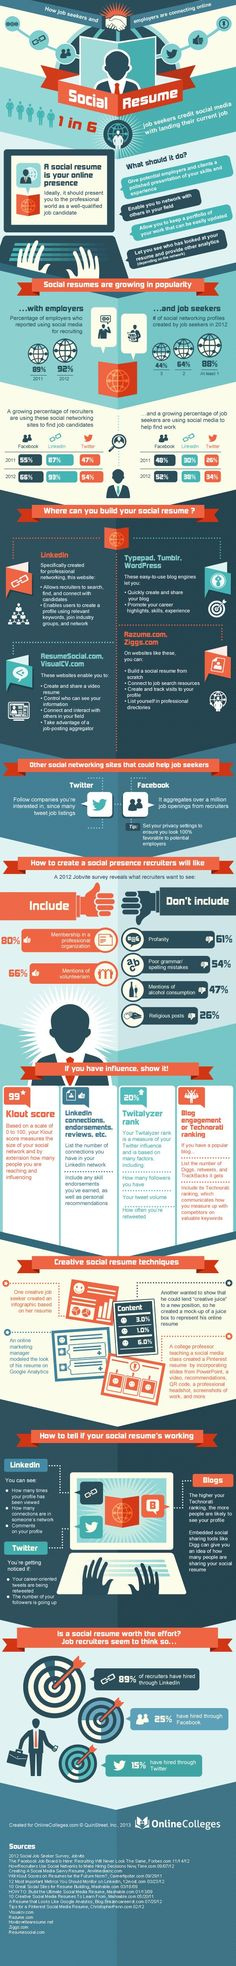 A well planned social media presence is important to job seekers. INFOGRAPHIC: Social Resume: How Job Seekers and Employers are Connecting Online Cv Tips, Resume Tips, Resume Cv, Video Resume, Resume Writing, Social Media Tips, Social Media Marketing, Marketing Resume, Social Networks